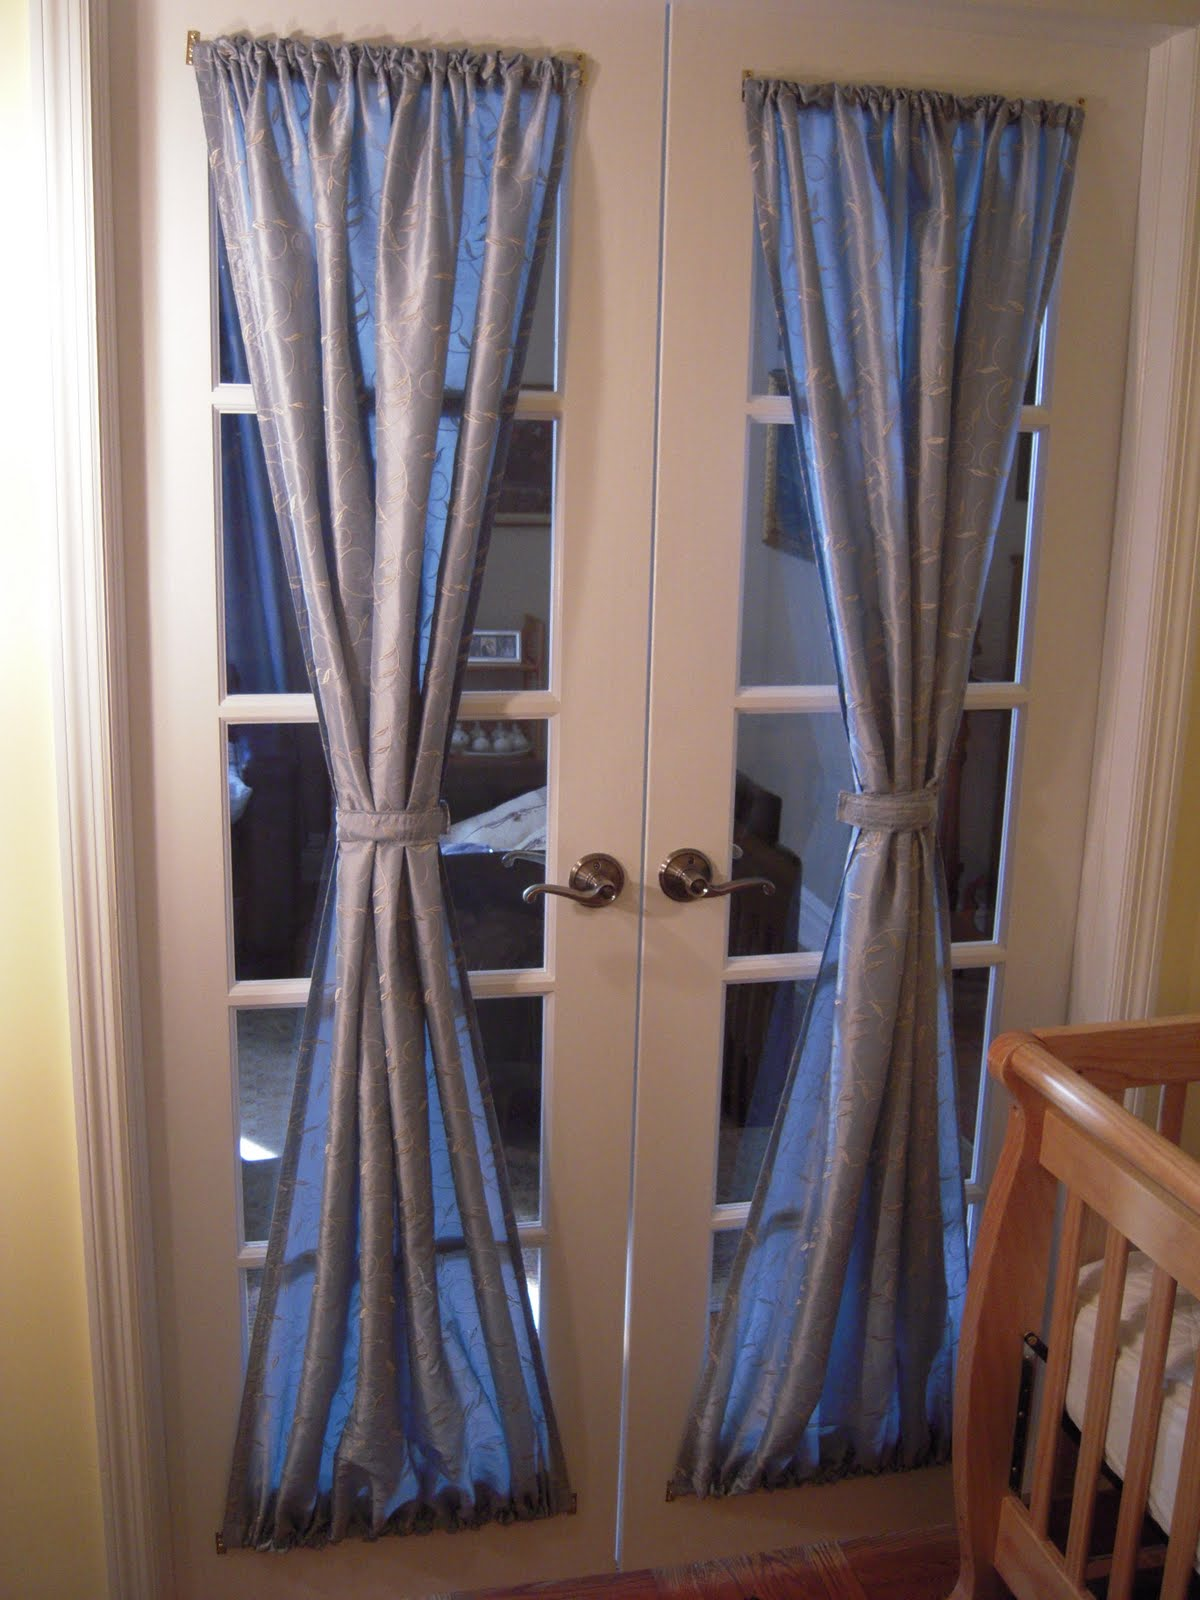 Charing x curtains for french doors some new ideas Window treatment ideas to make